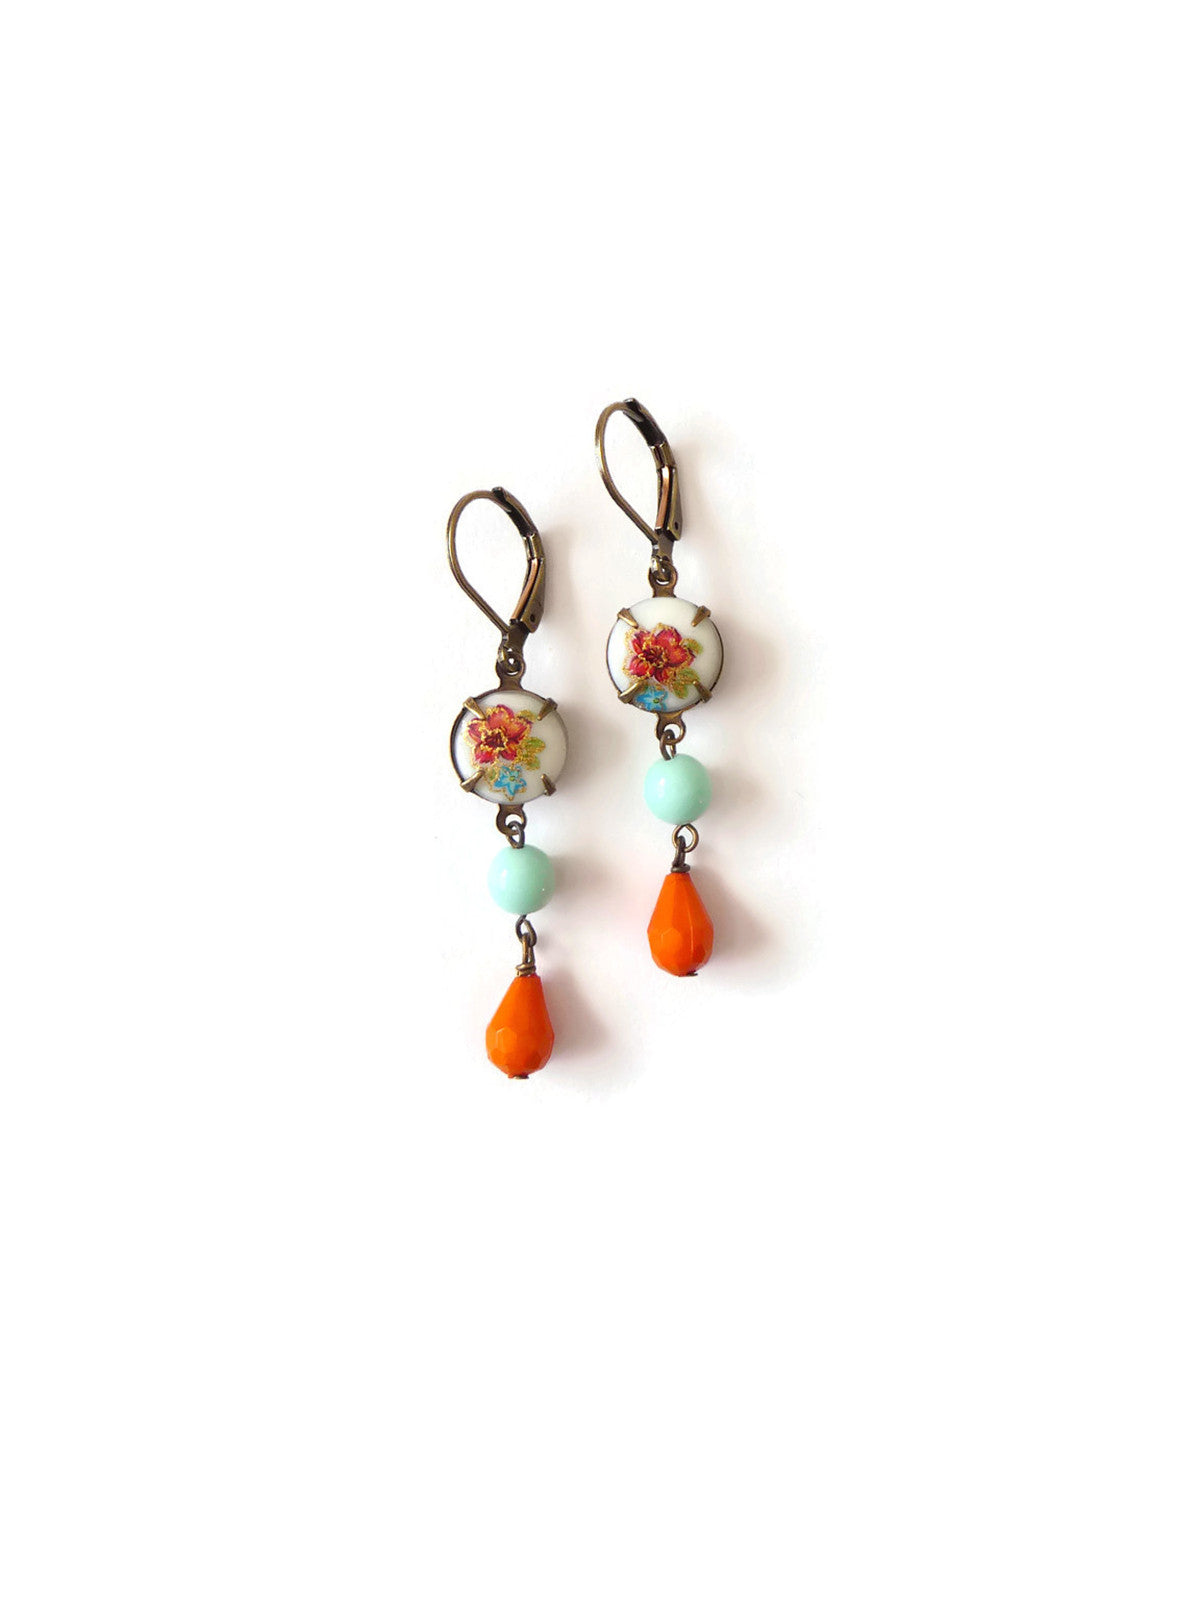 Retro earrings with decal cabochons mont green beads and orange drops